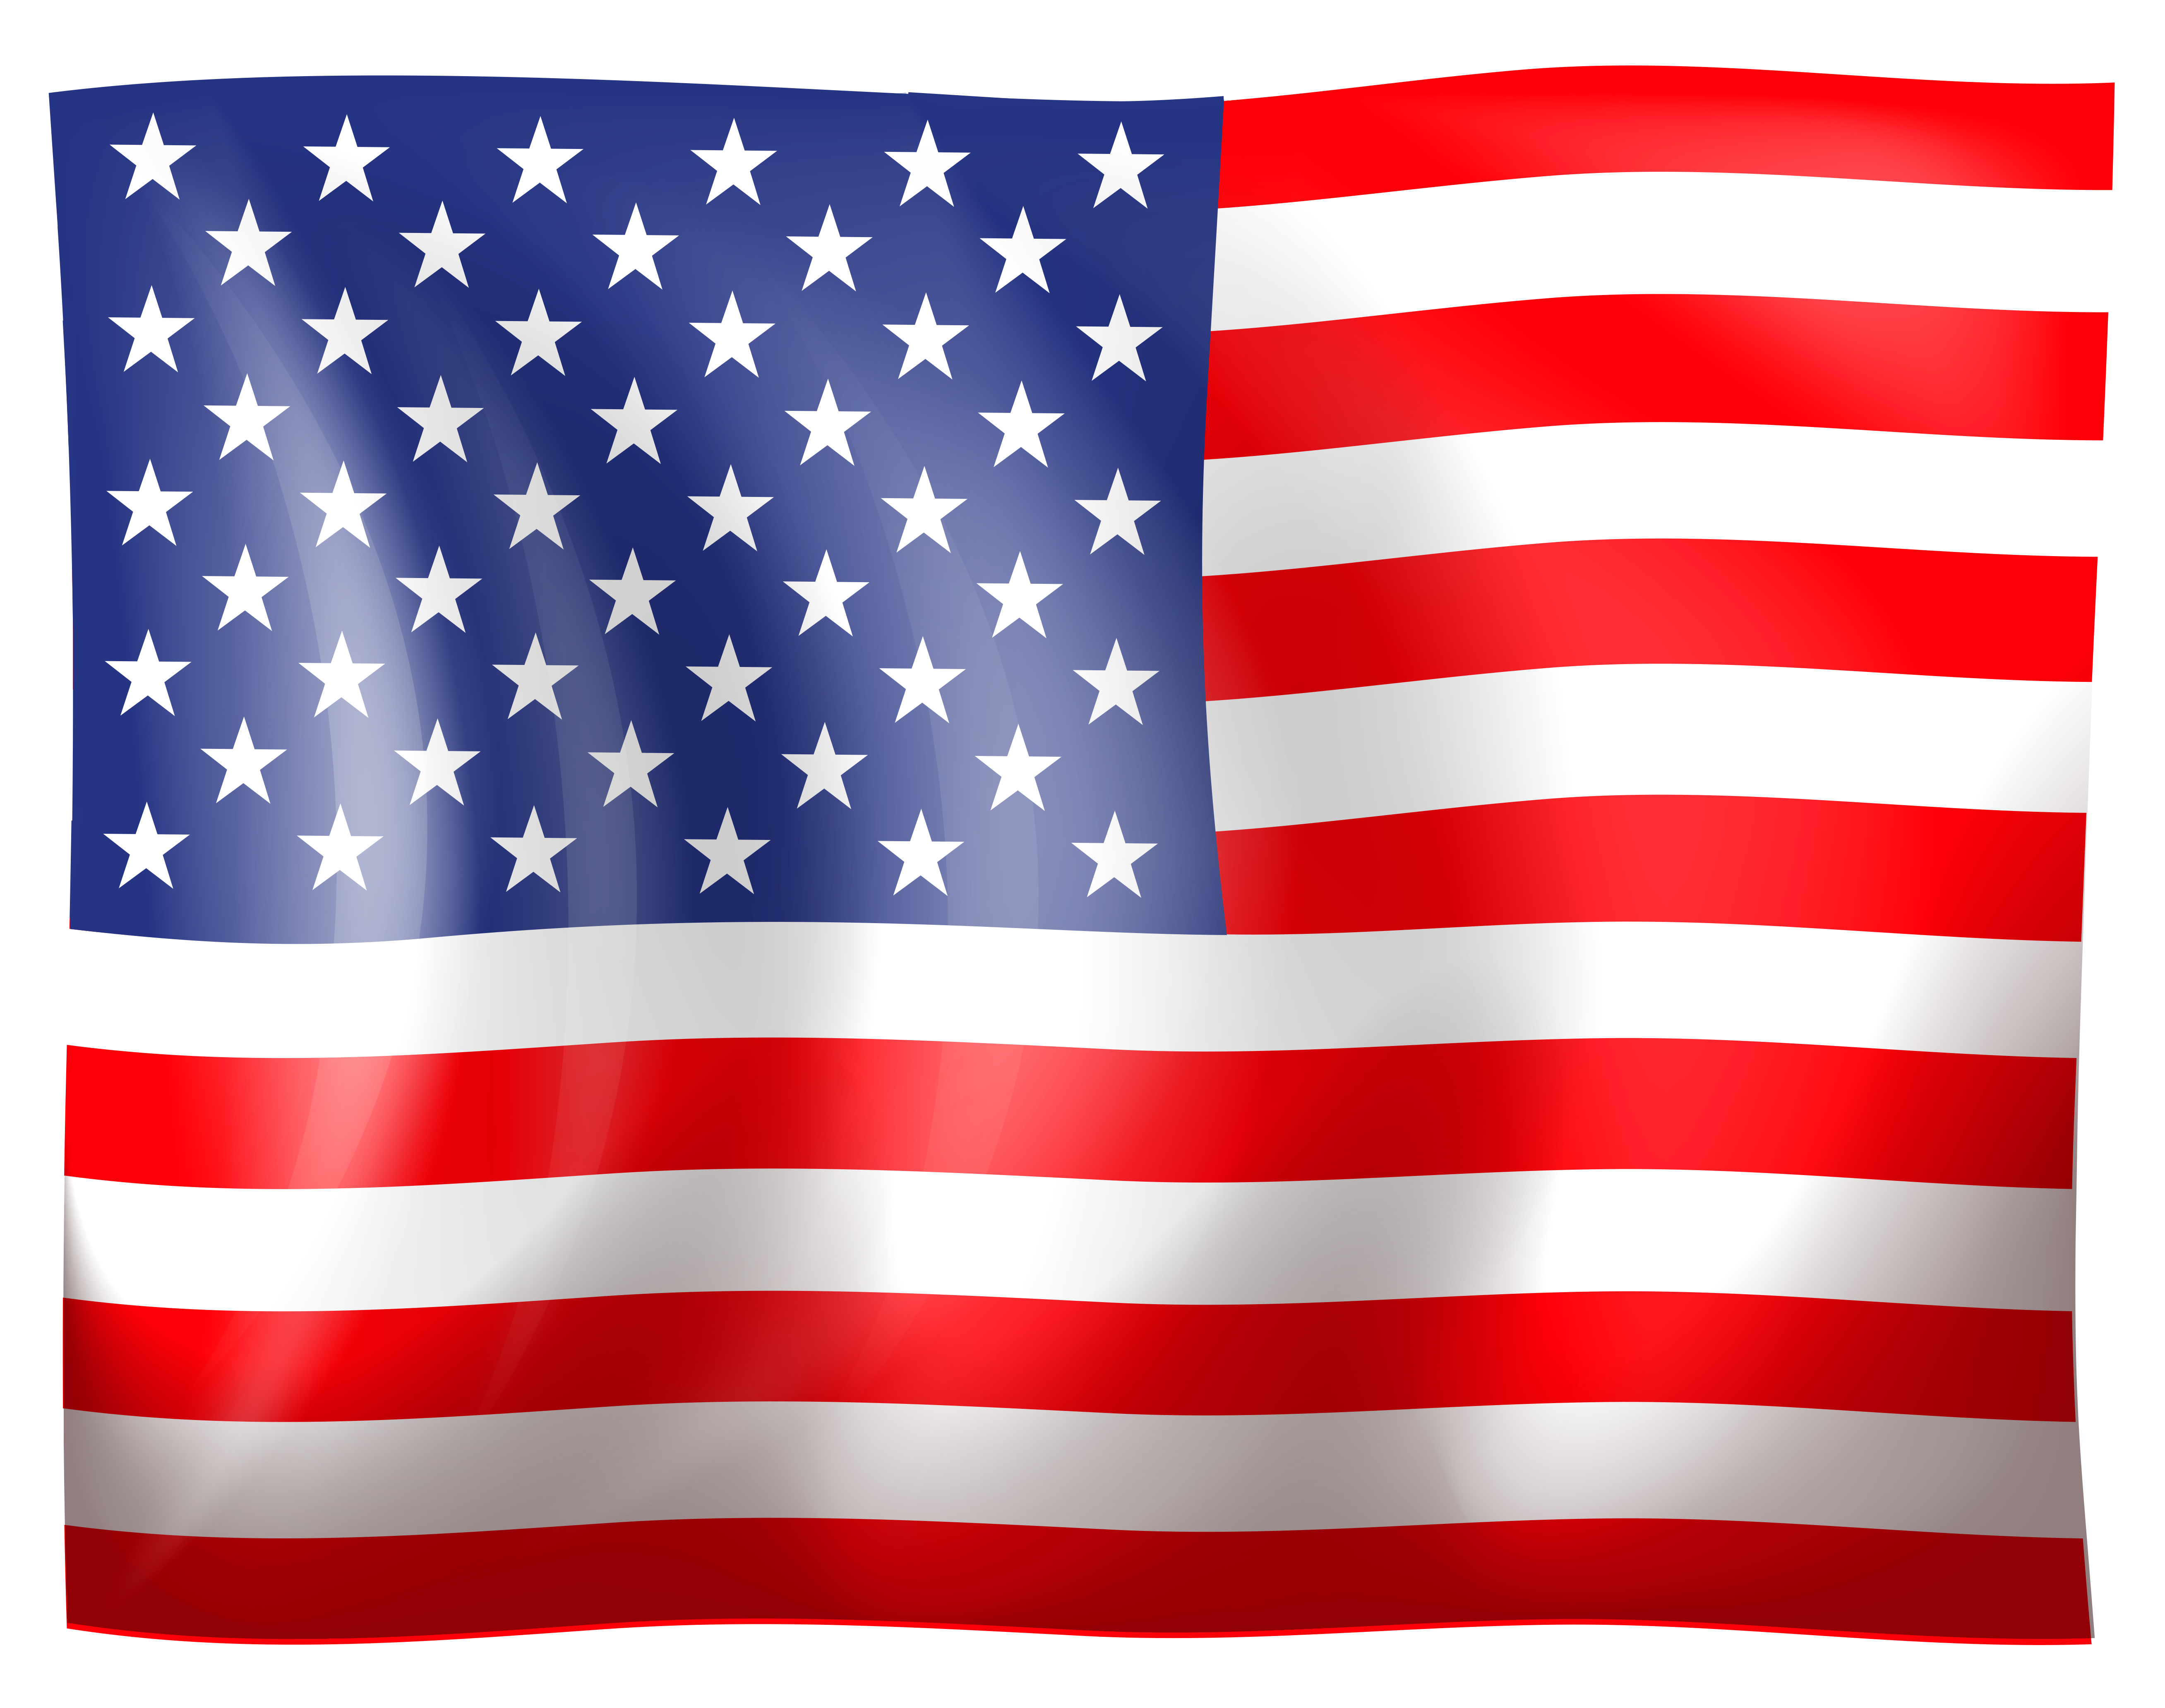 United States clipart american flag #15 - United States PNG HD